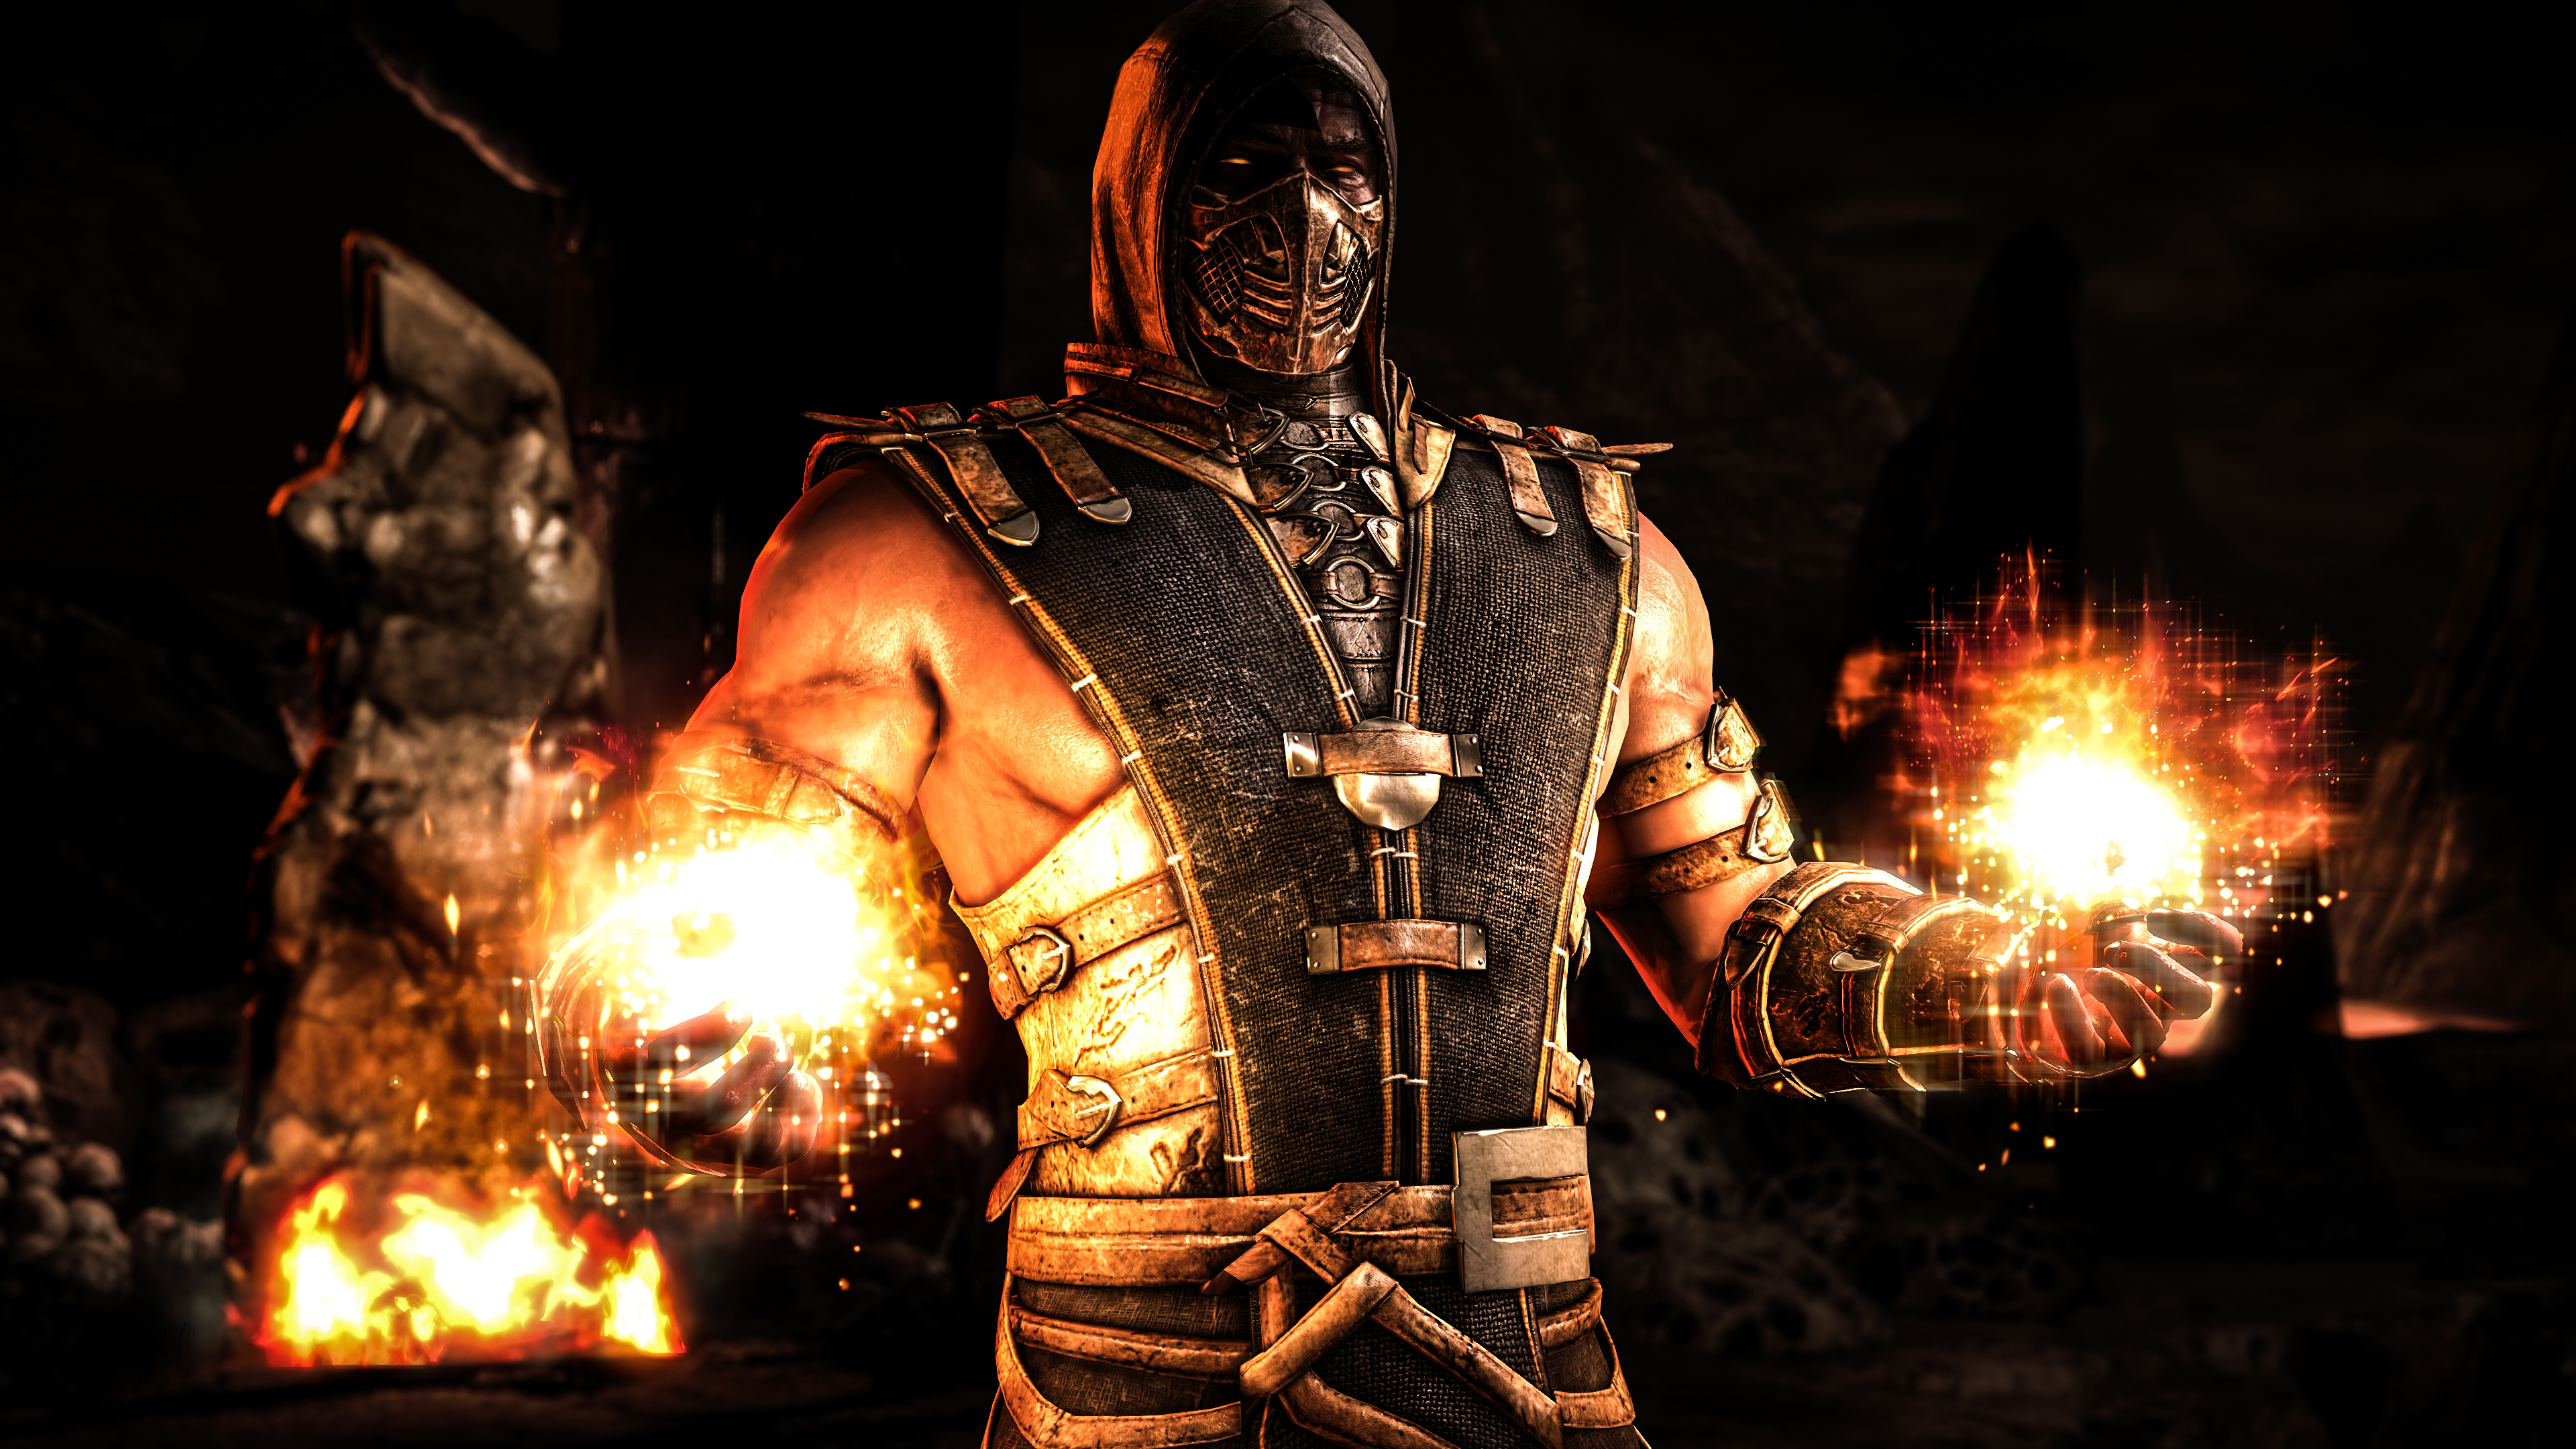 Mortal Kombat 4k Ultra Hd Wallpaper And Background Image: 4K Mortal Kombat Wallpaper